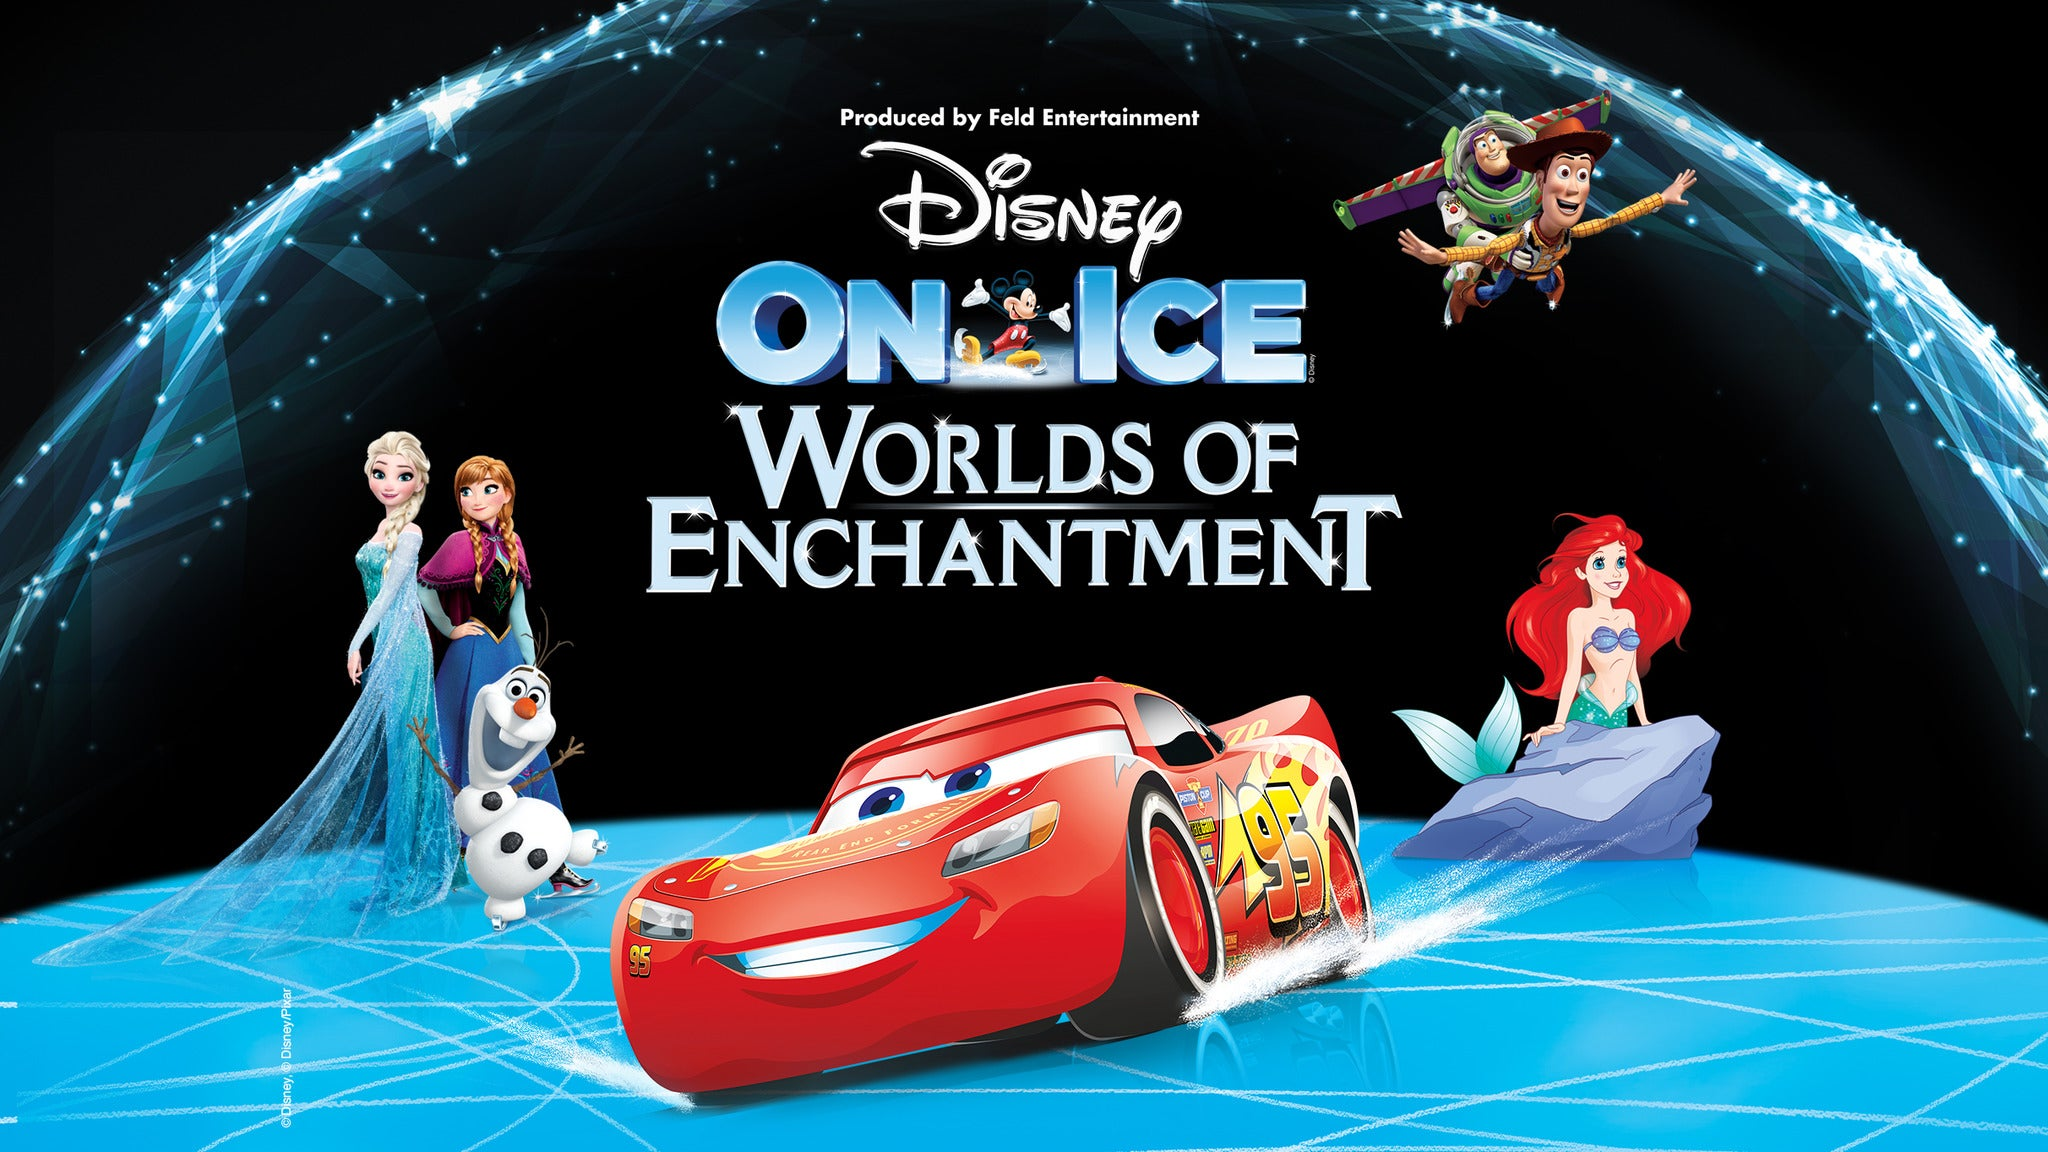 Disney On Ice: Worlds of Enchantment - Concord, NH 03301